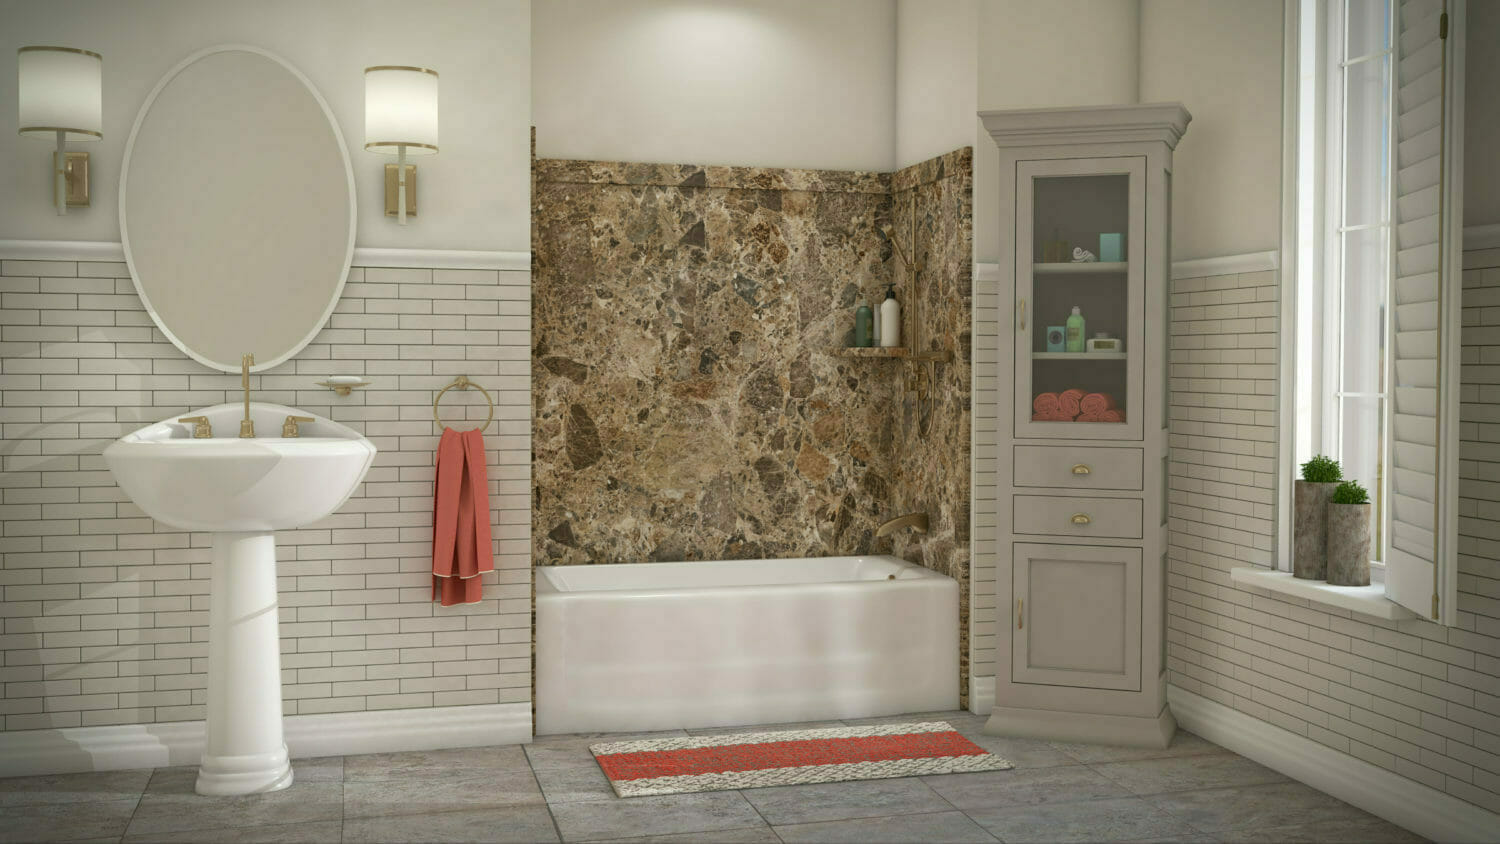 Top 10 Trending Bathroom Ideas You Can Do On A Budget